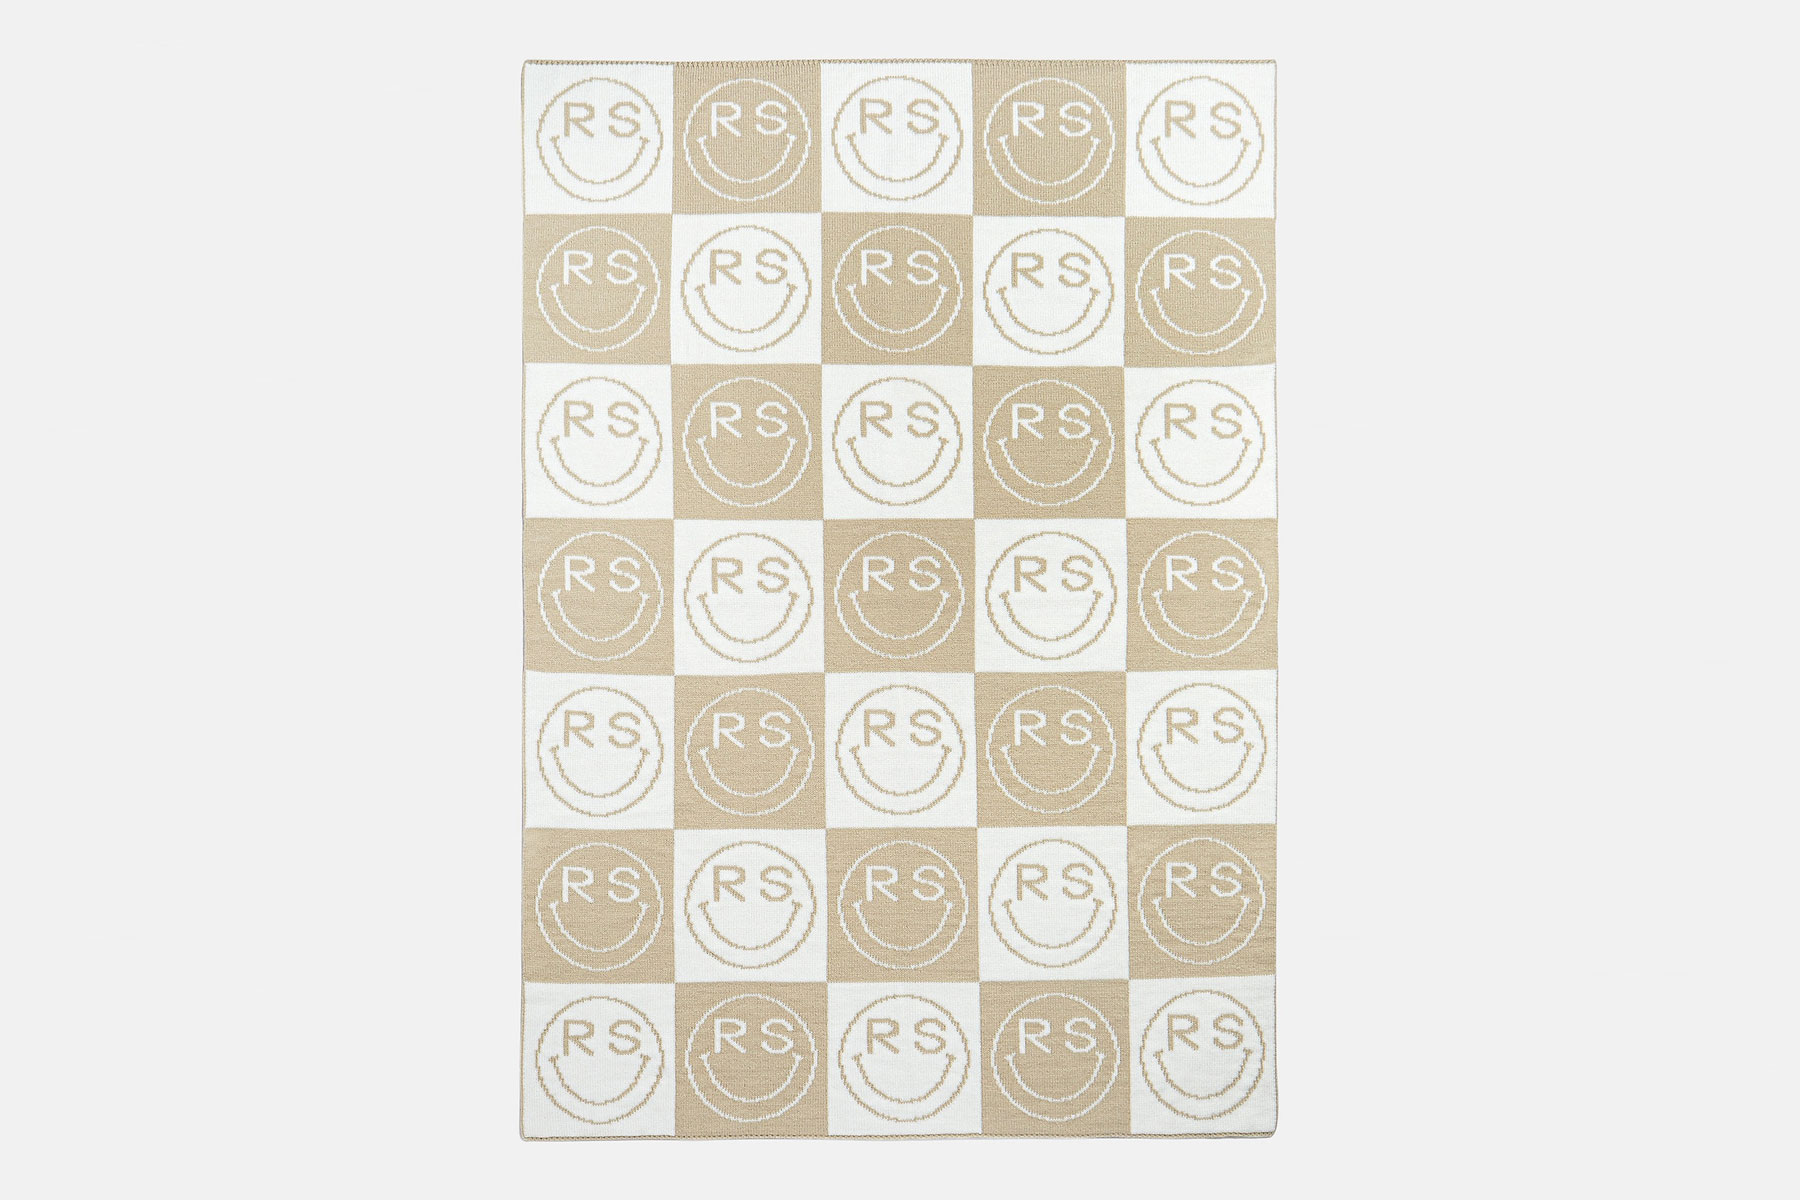 Cream and tan blanket with smiley faces